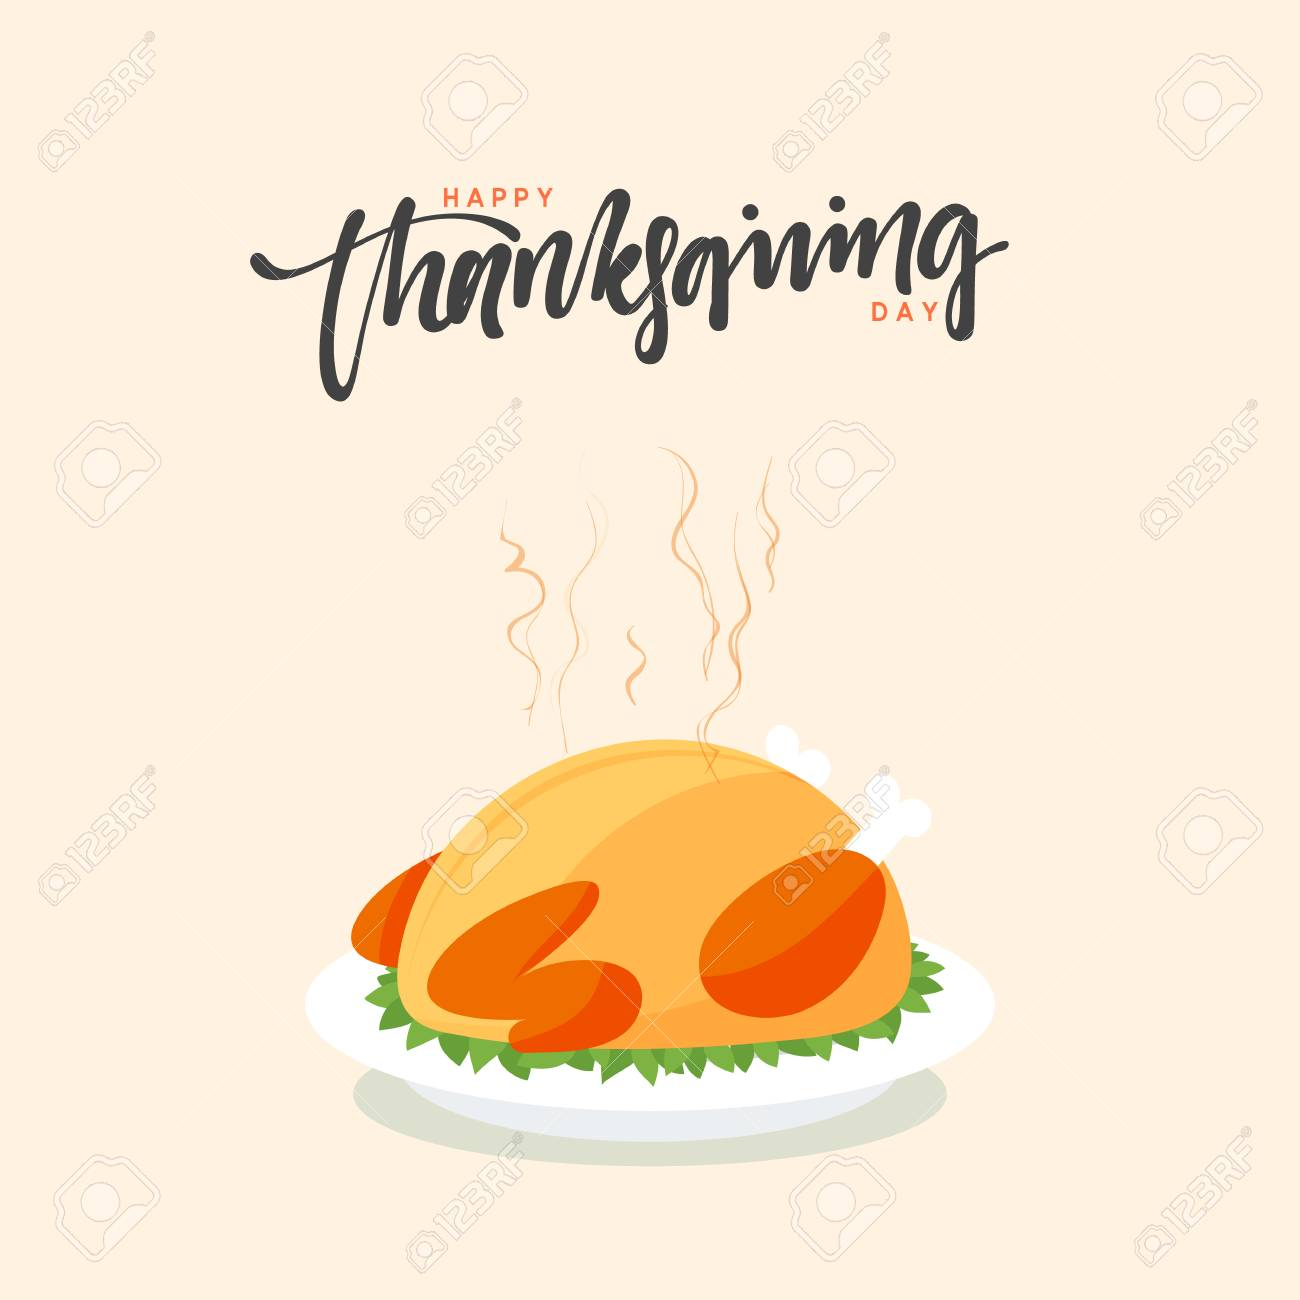 happy thanksgiving template with roasted turkey dish illustration